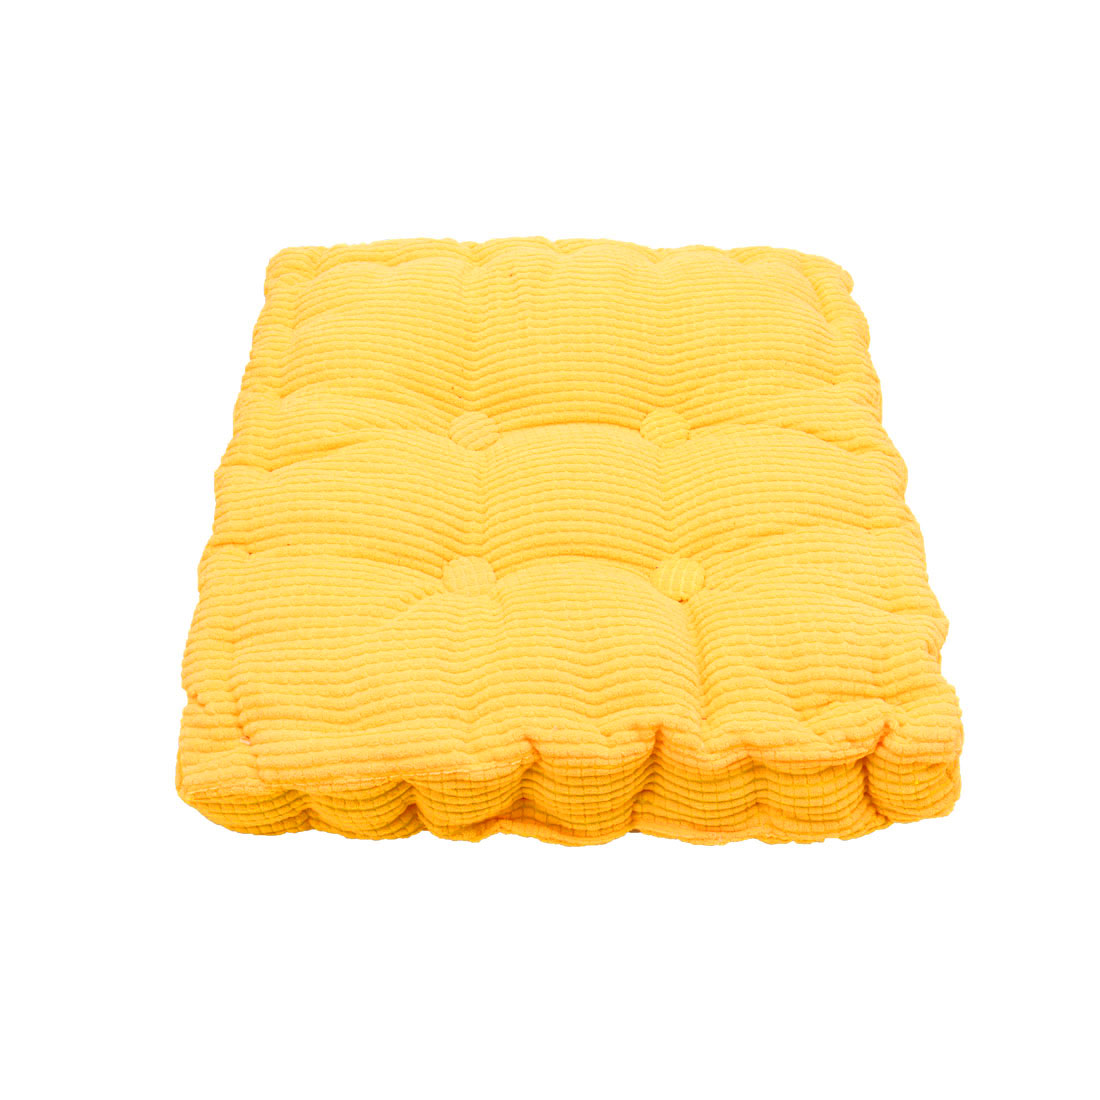 Home Office Corduroy Square Shaped Anti Slip Seat Chair Cushion Pad Cover Yellow